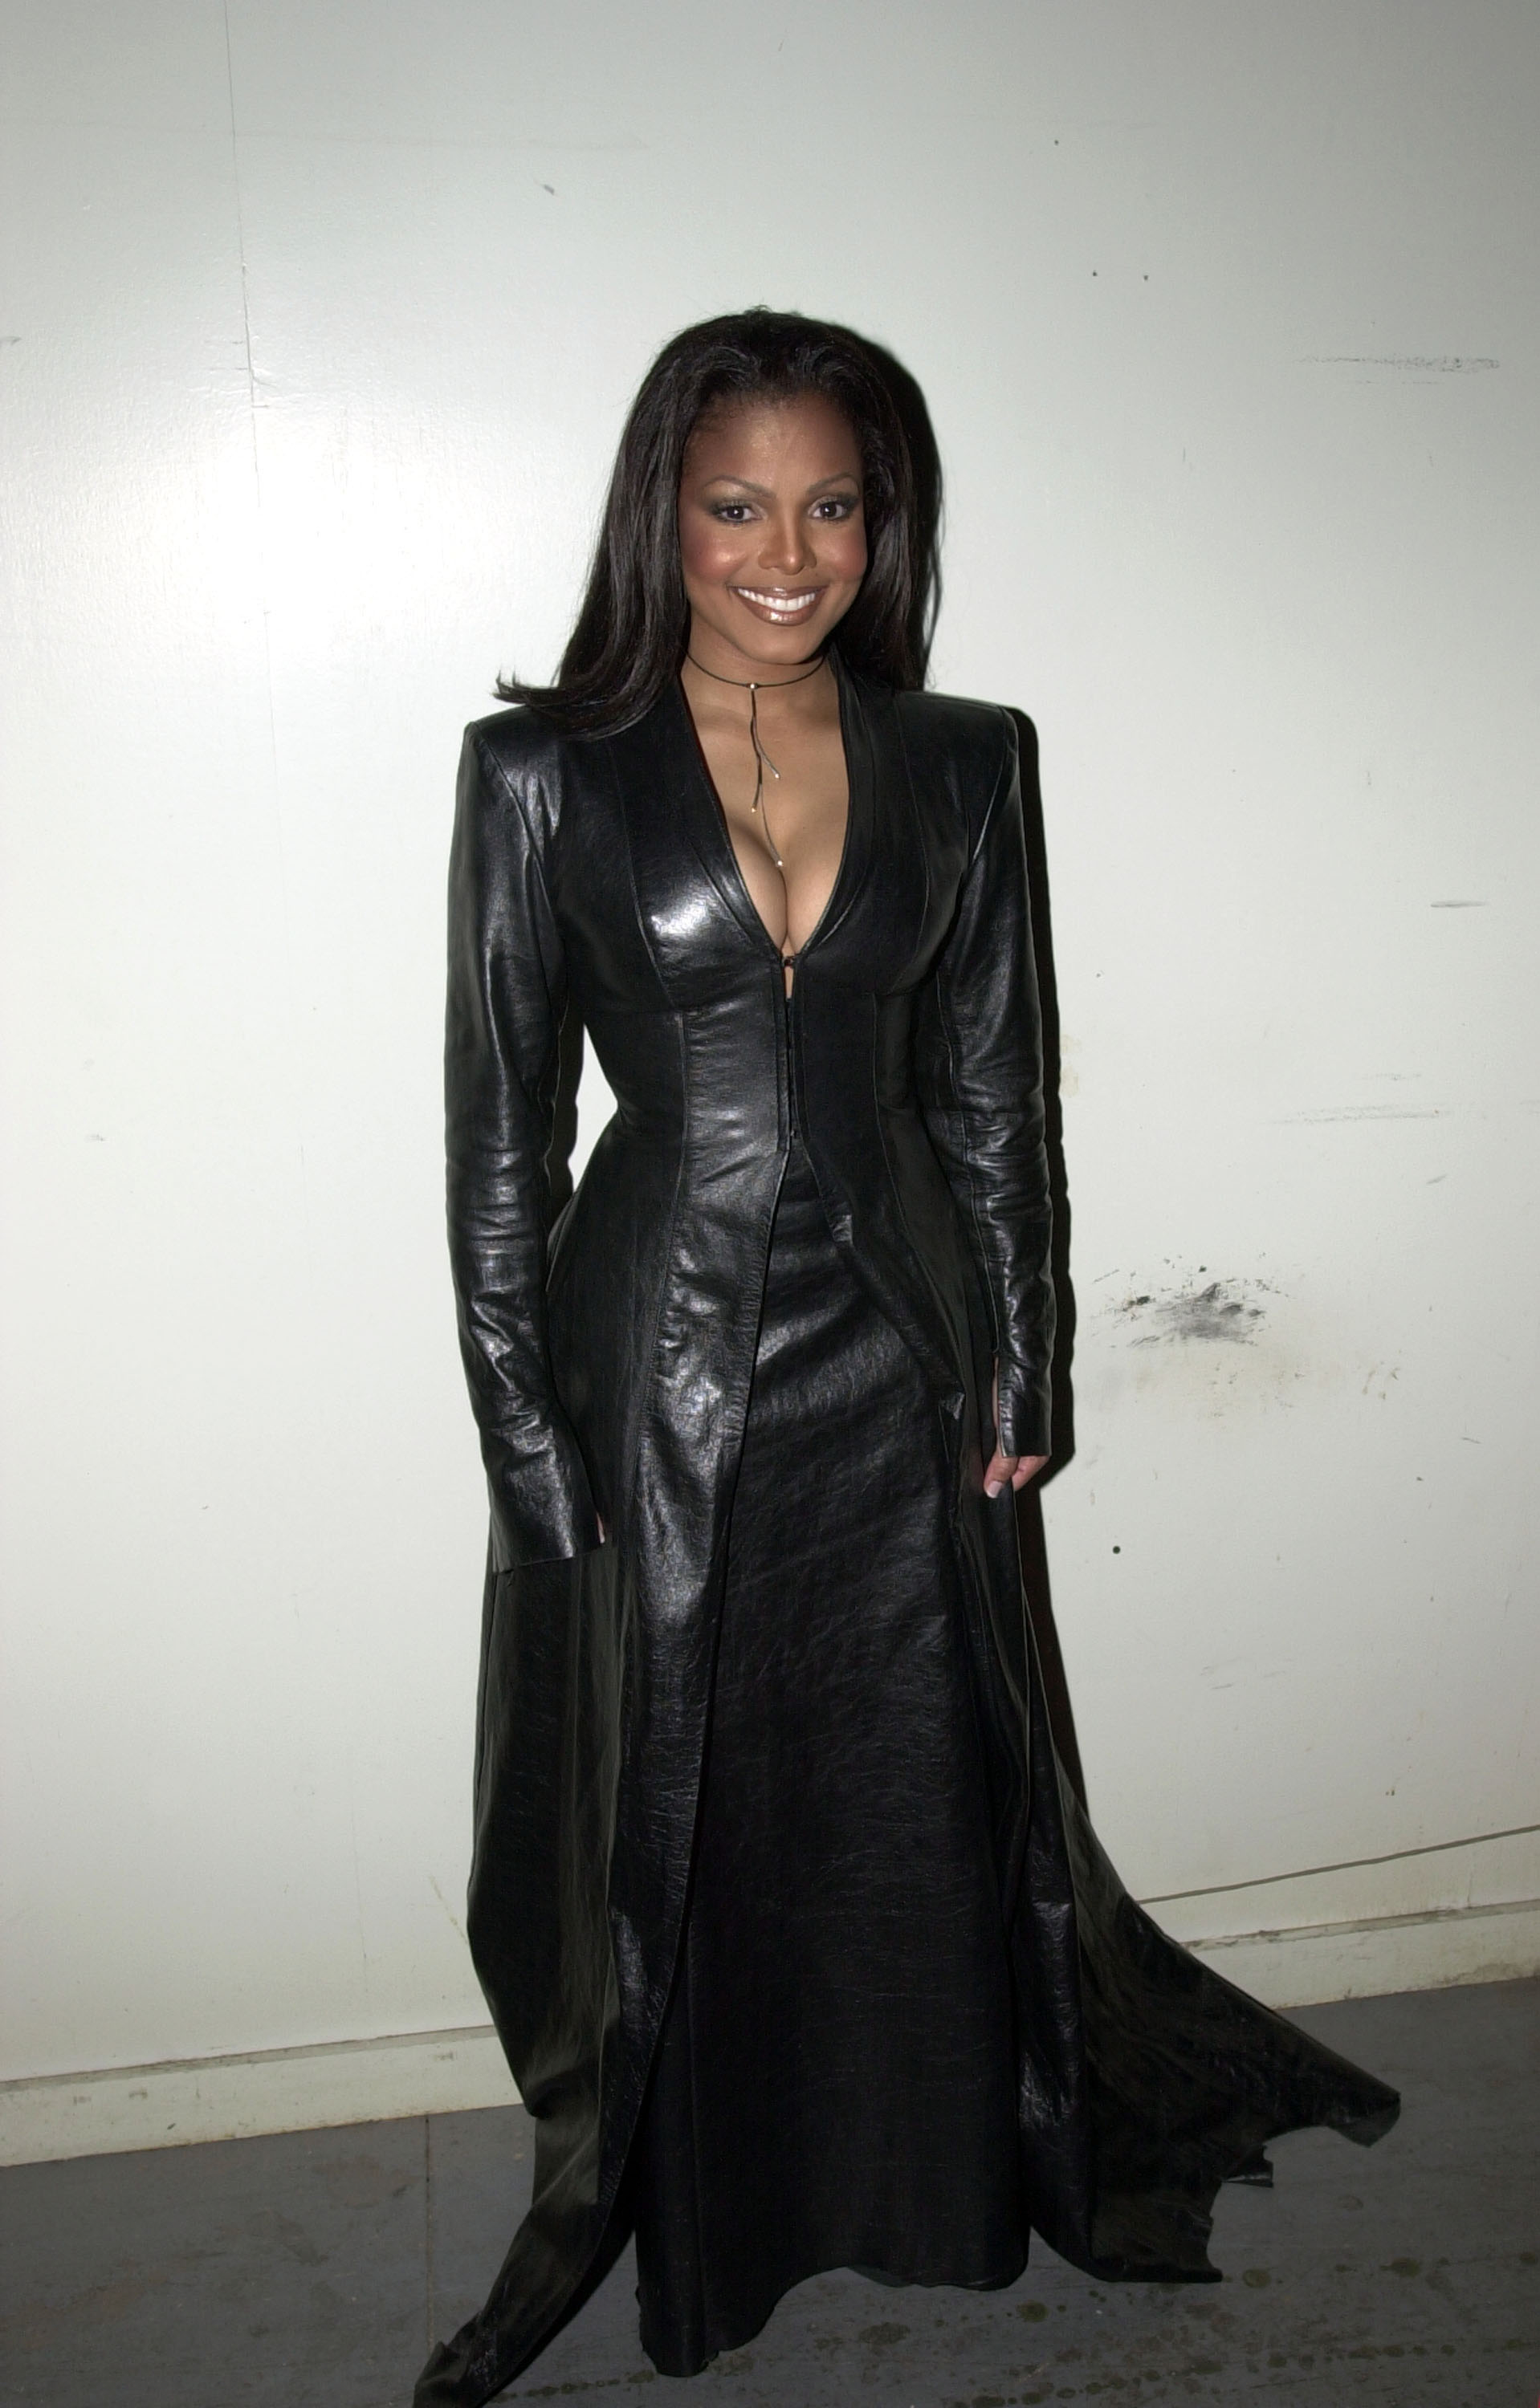 janet jackson wearing an all leather matrix inspired outfit